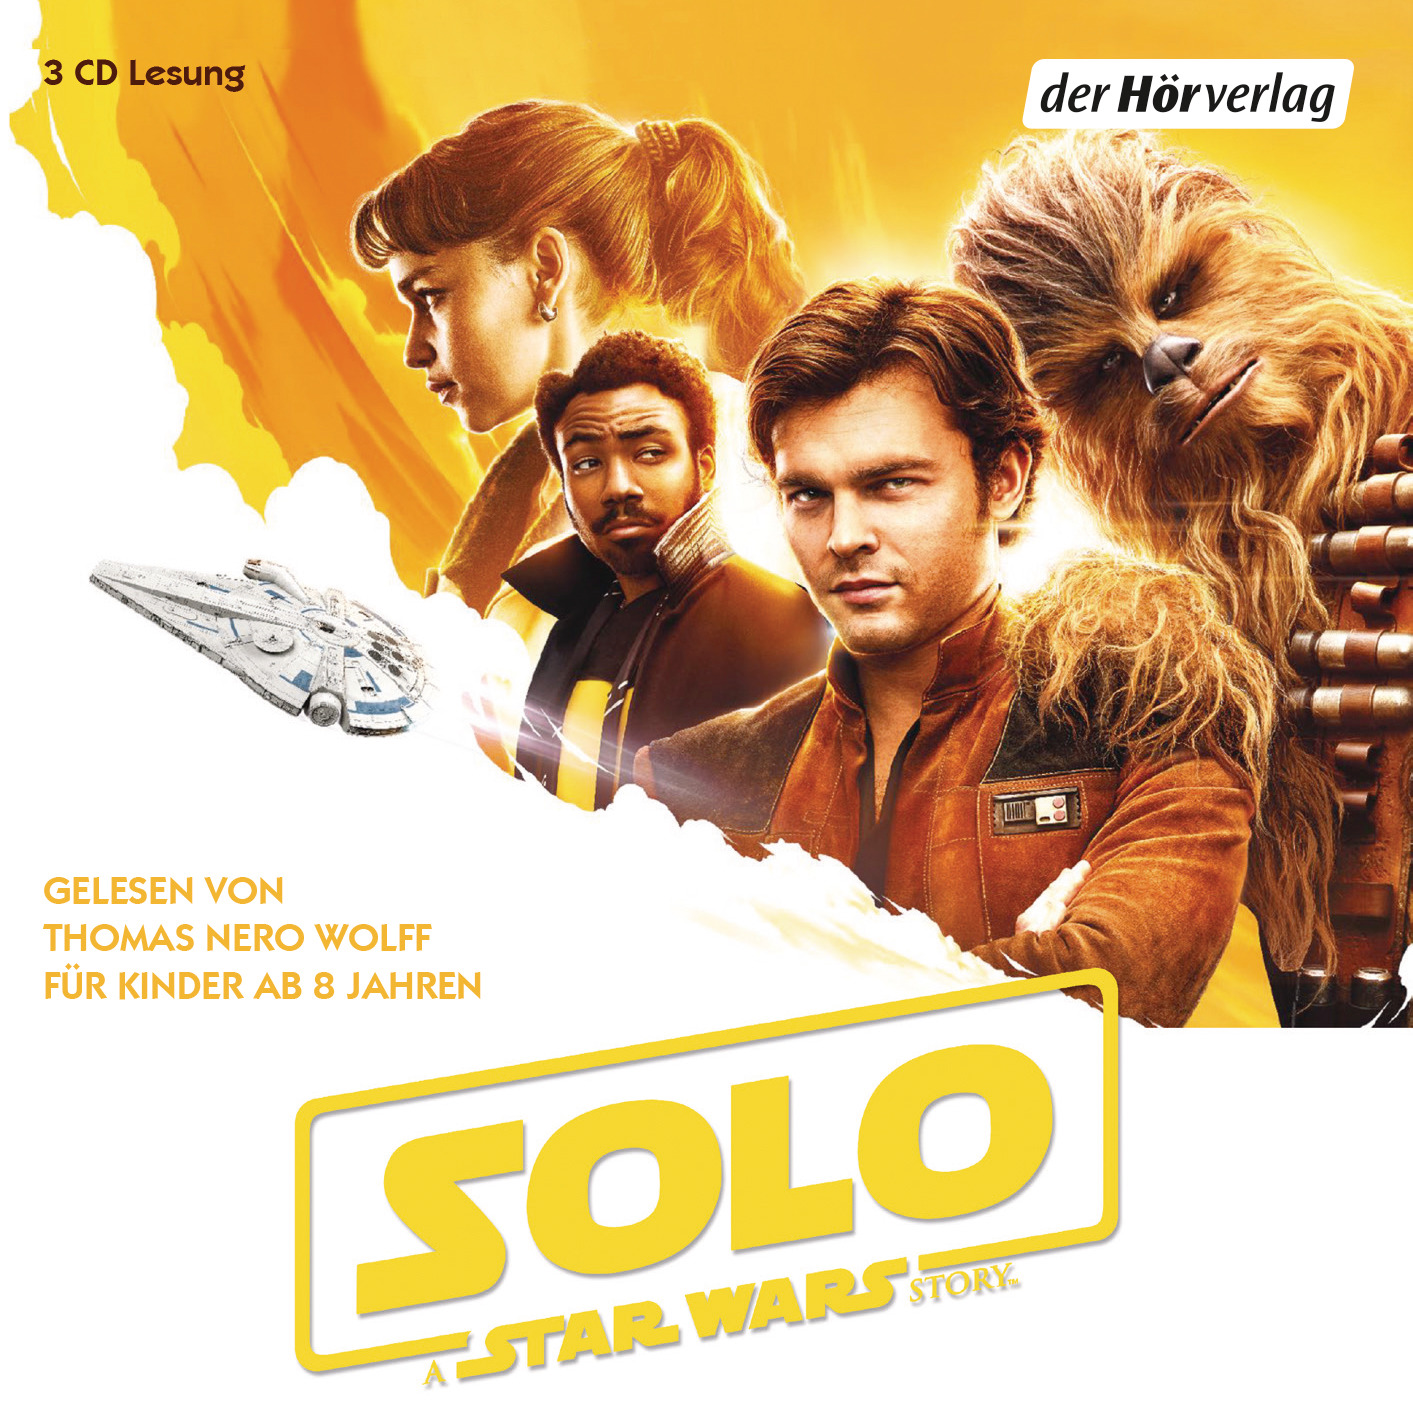 Solo A Star Wars Story 01102018